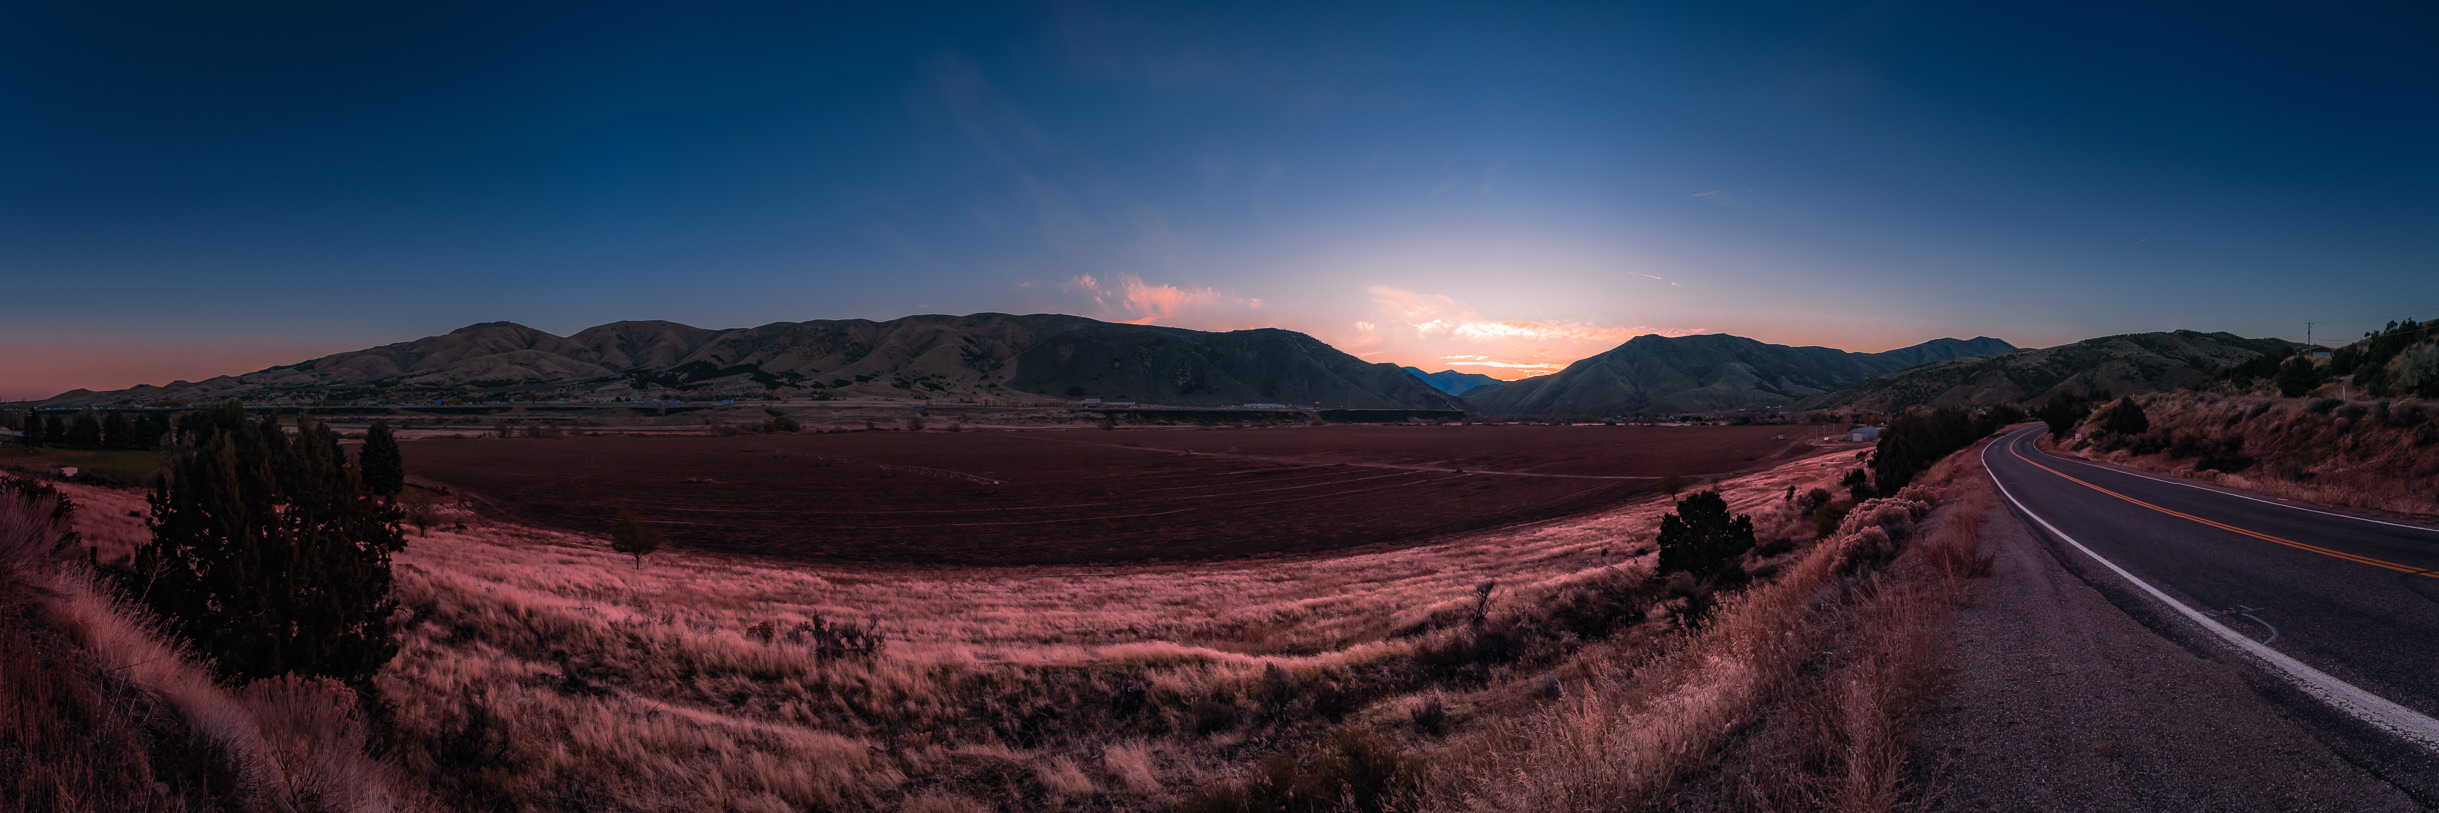 The first light of day crests the mountains on the outskirts of Pocatello, Idaho.